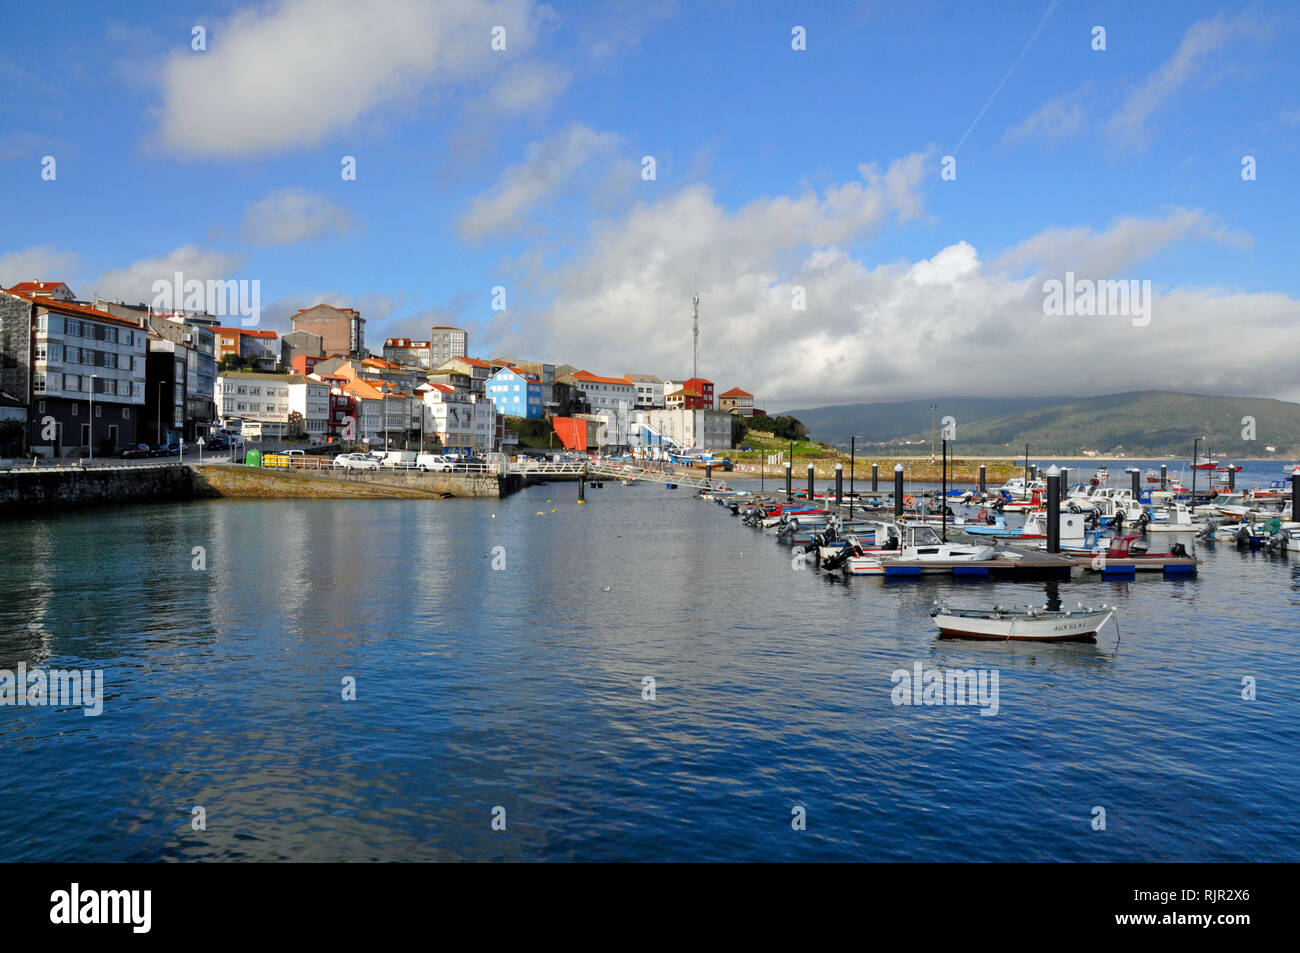 The harbour in fishing village of Fisterra, the final destination for pilgrims on the Way of St.James. - Stock Image